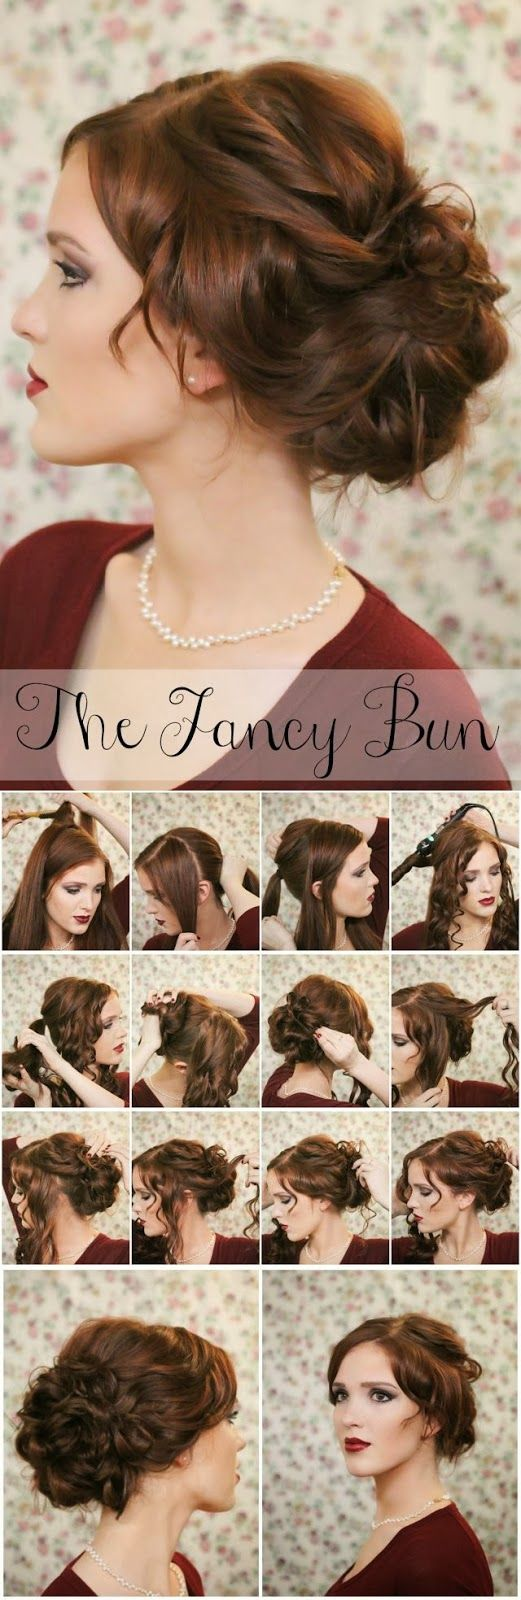 Easy simple knotted bun updo hairstyle tutorials haircuts